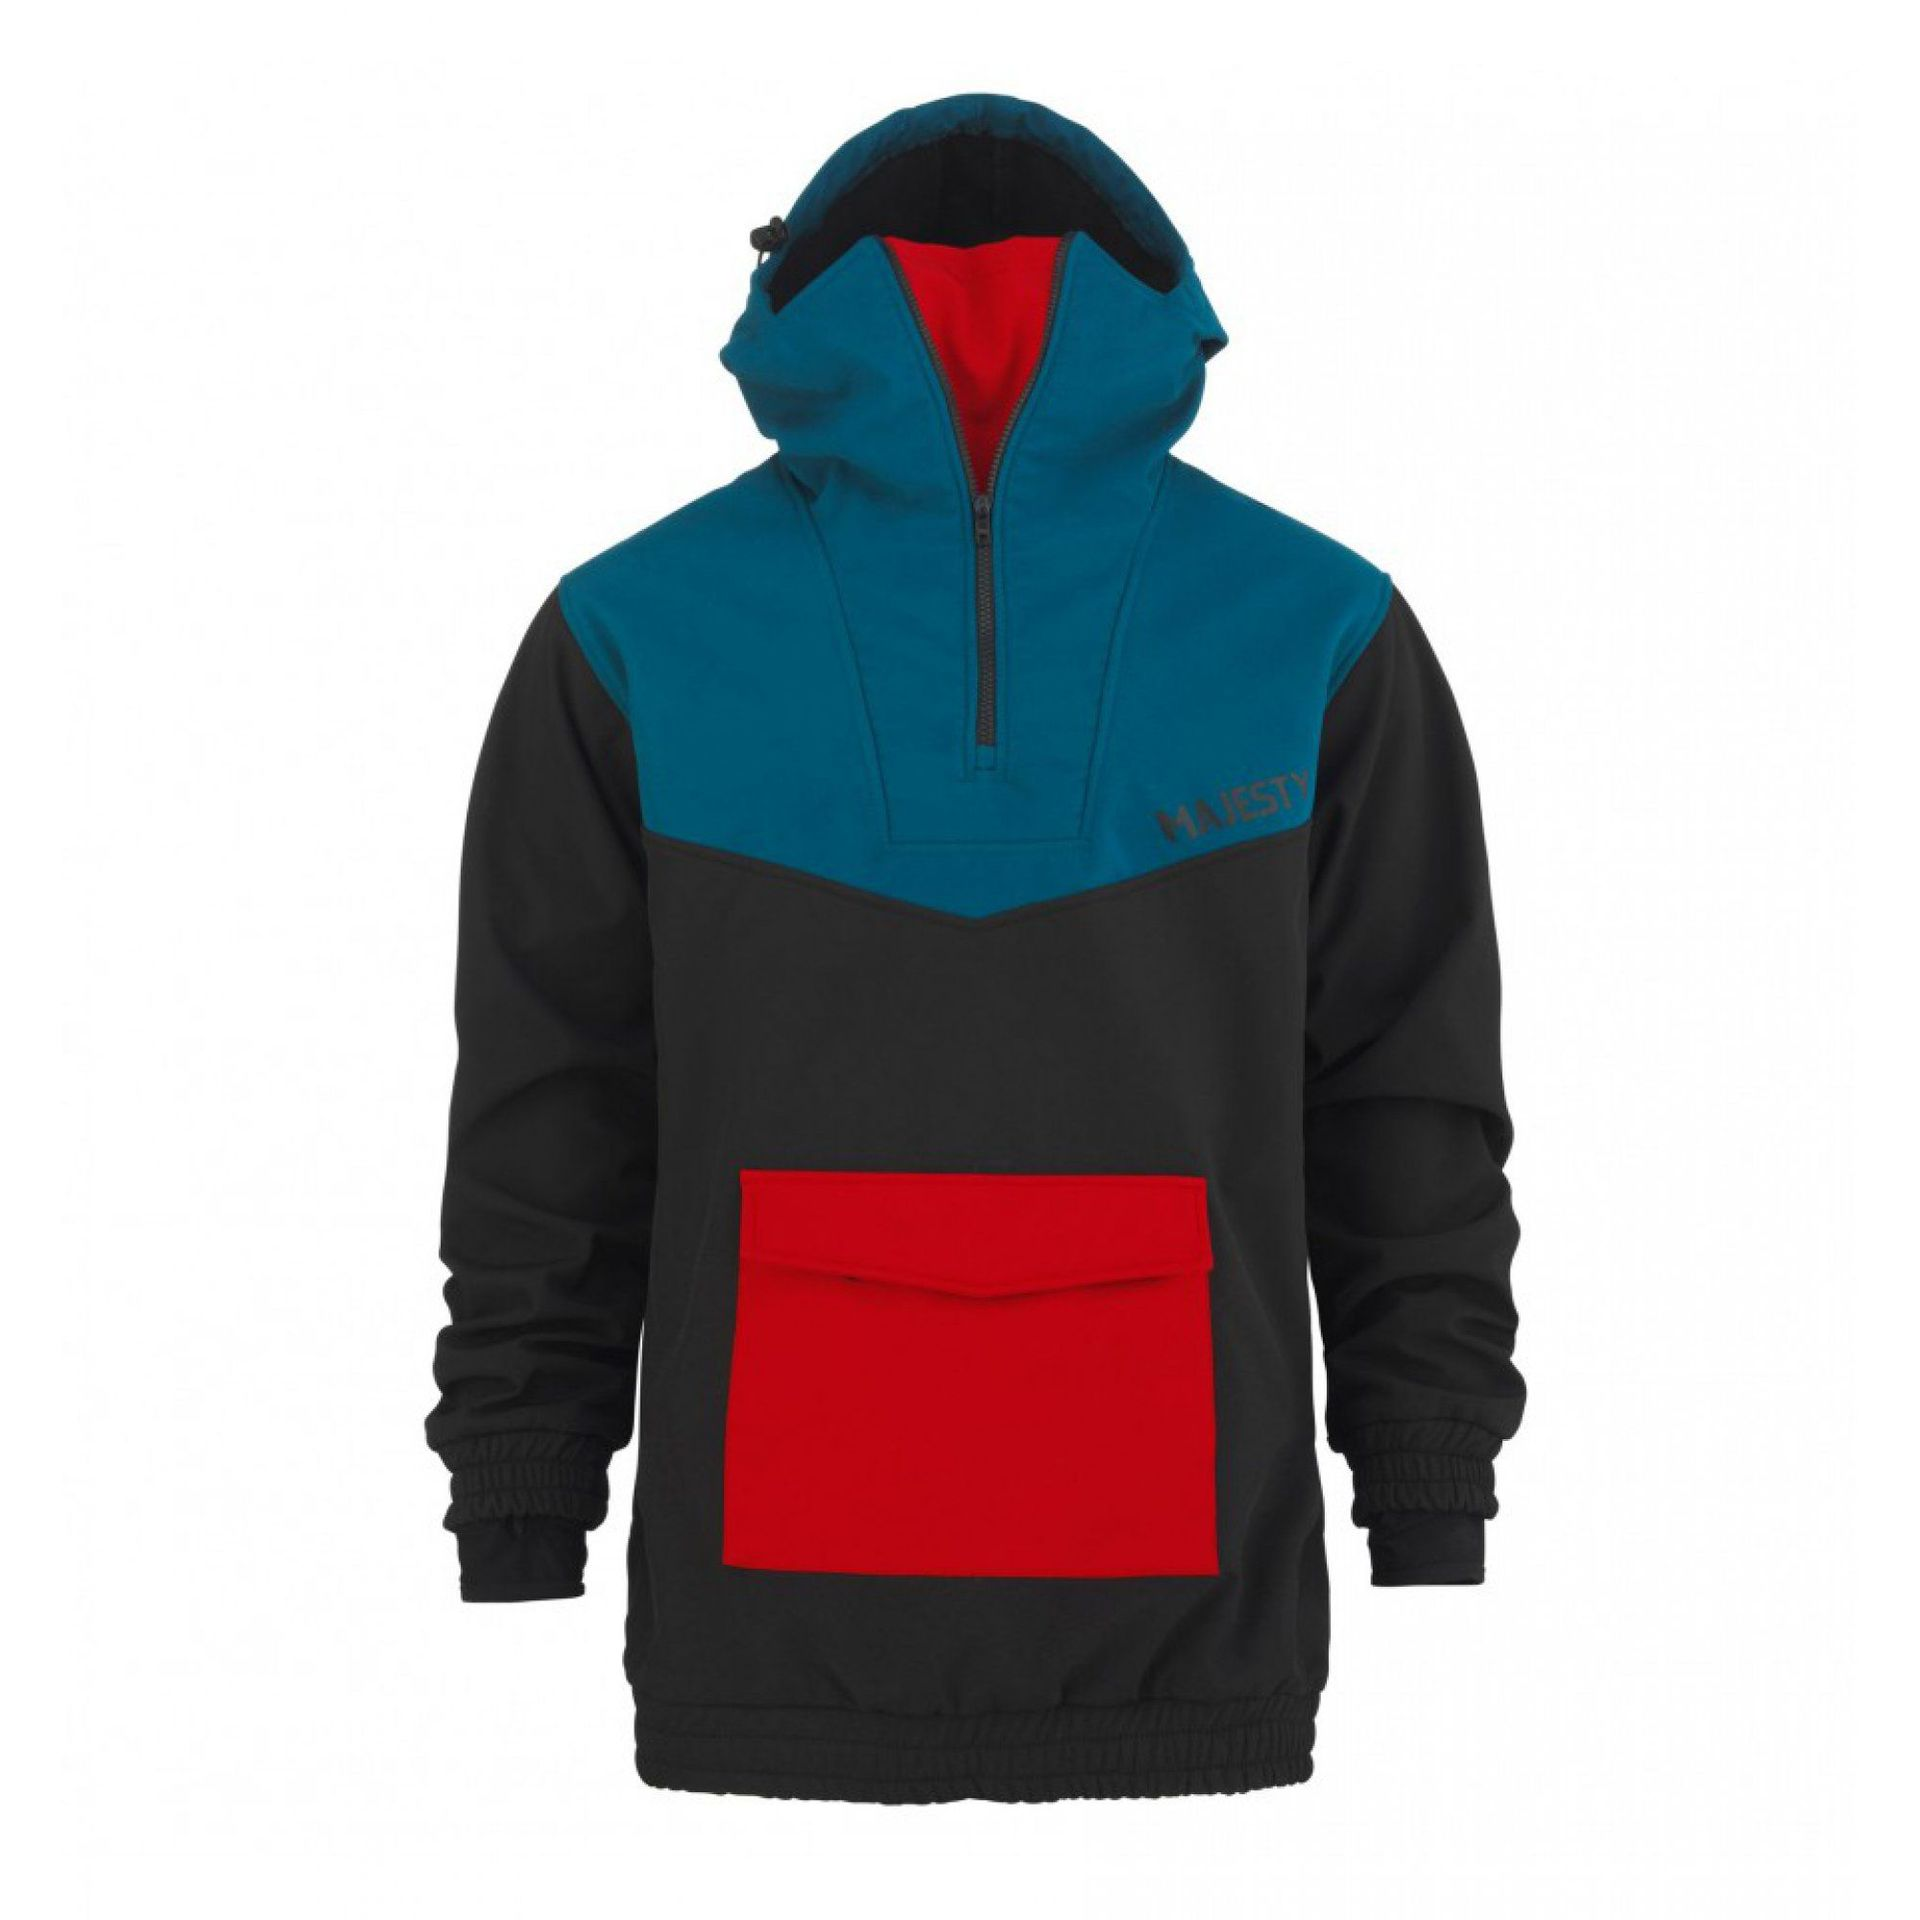 SOFTSHELL MAJESTY ANORAK BLACK|BLUE|RED 1